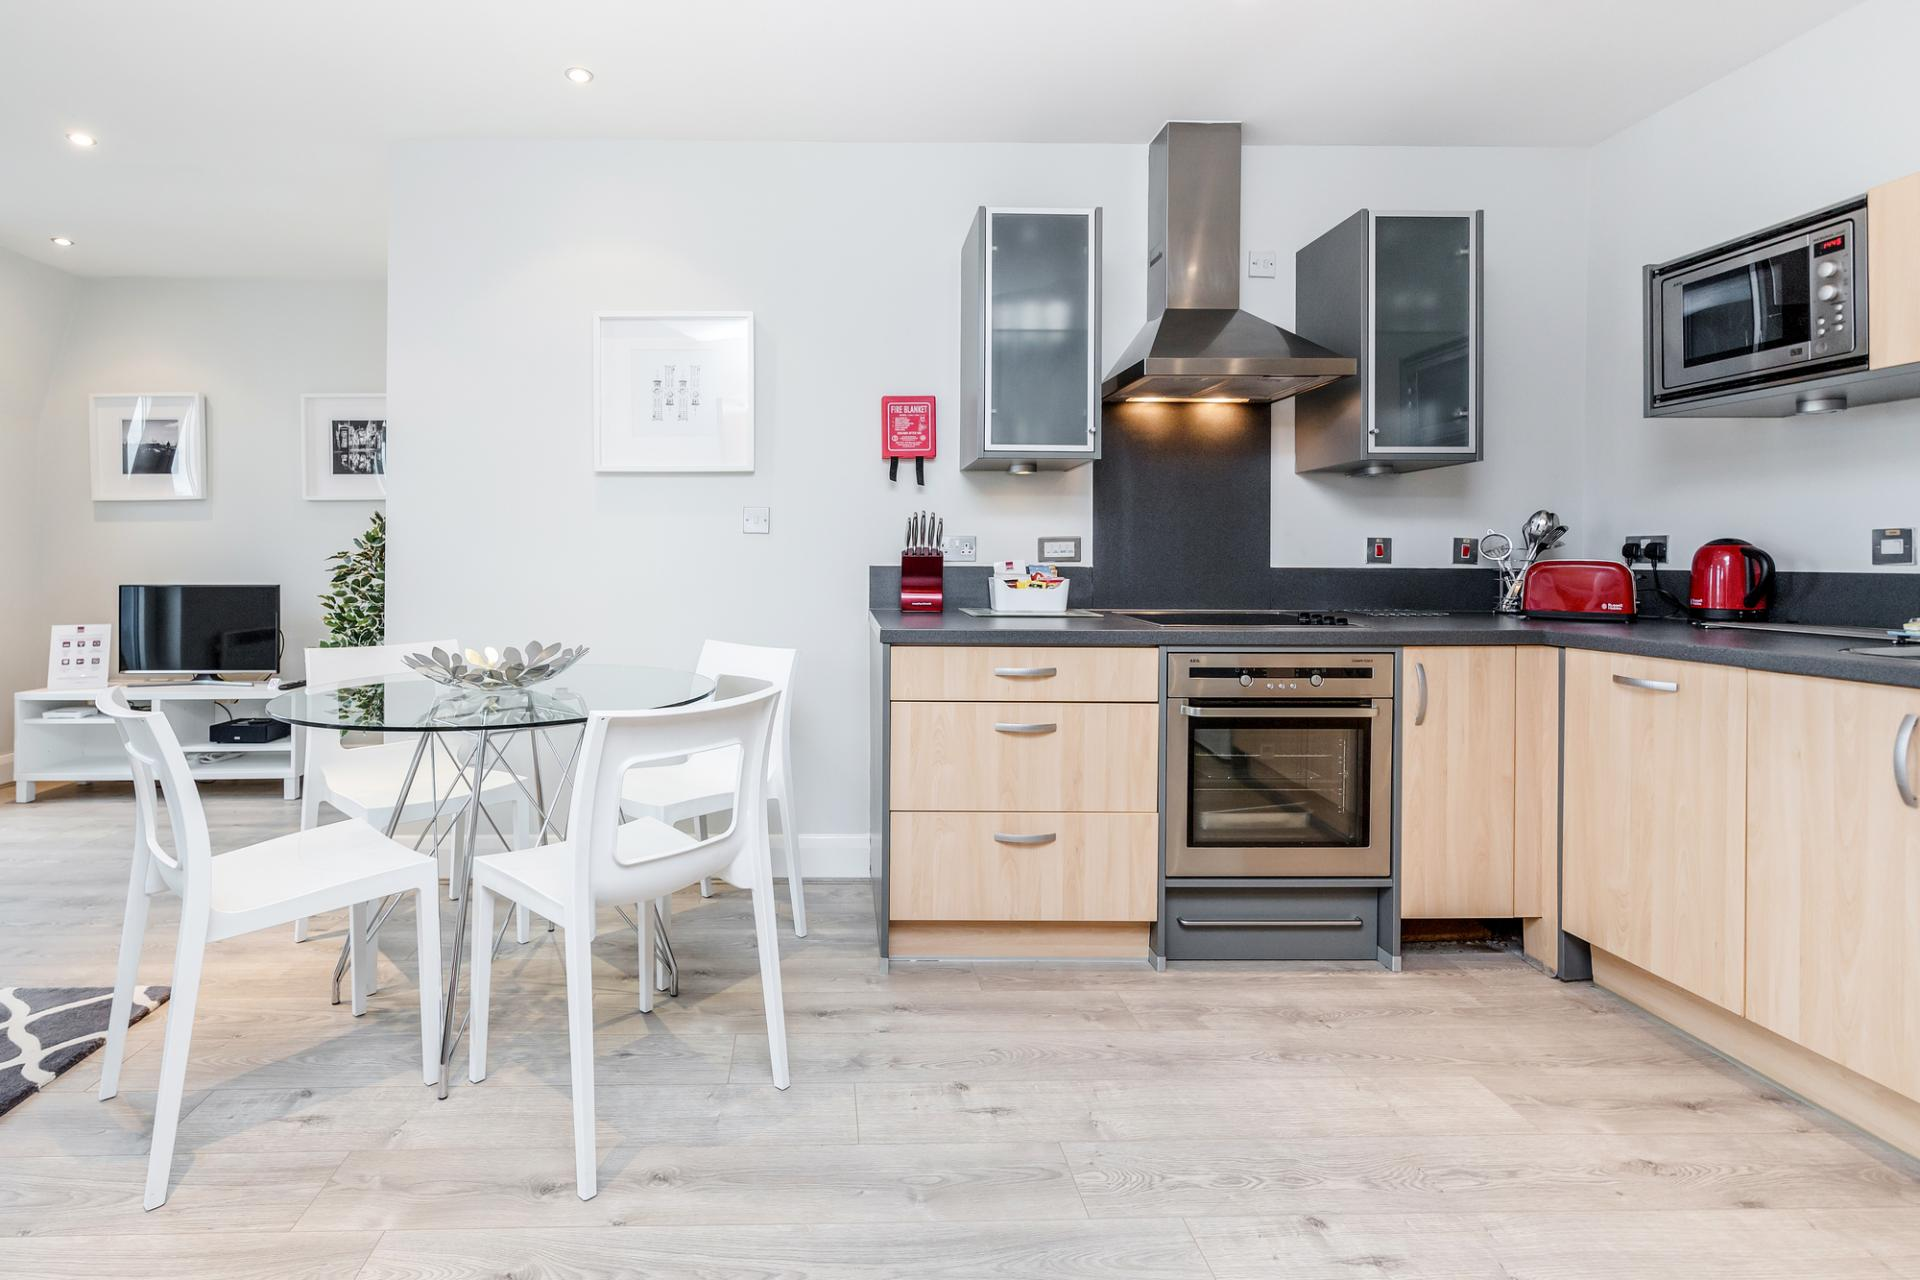 Kitchen at Thames Edge Apartments, Centre, Staines